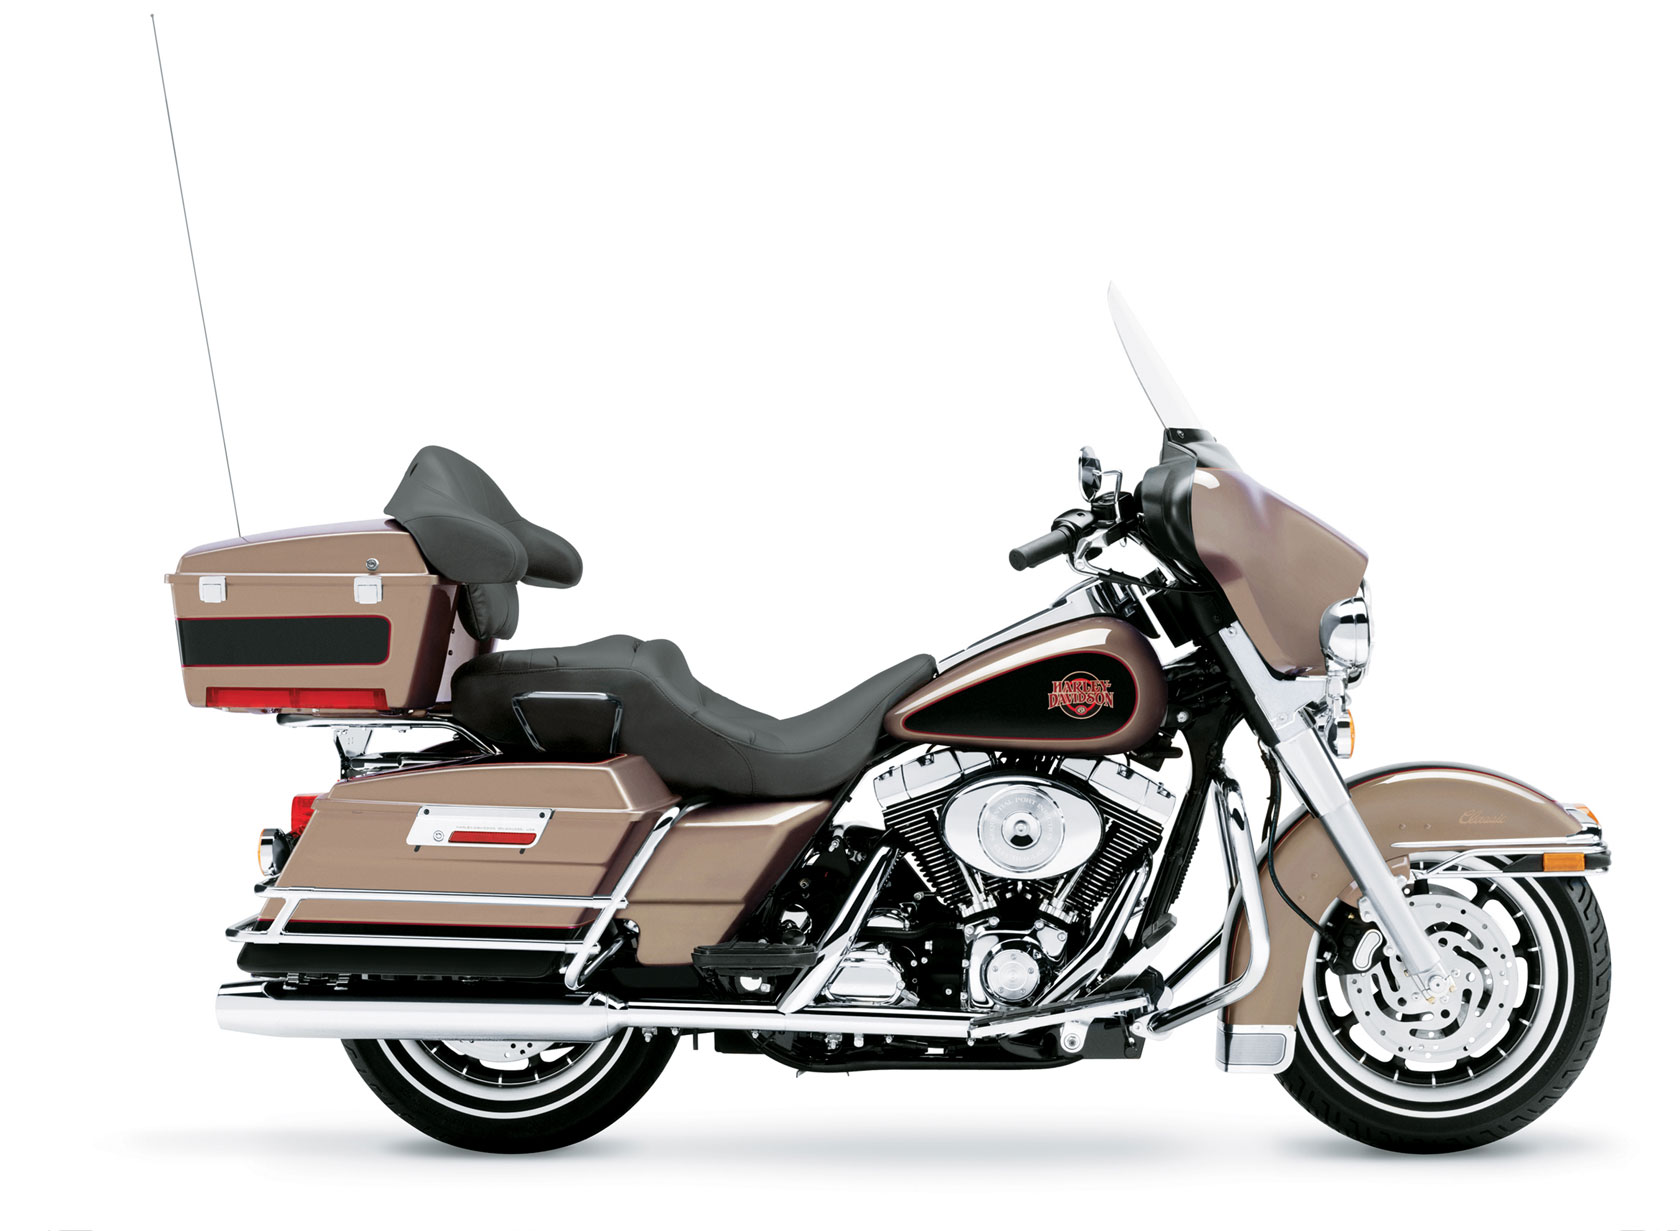 Harley-Davidson FLHTC Electra Glide Classic 2004 pics #18113